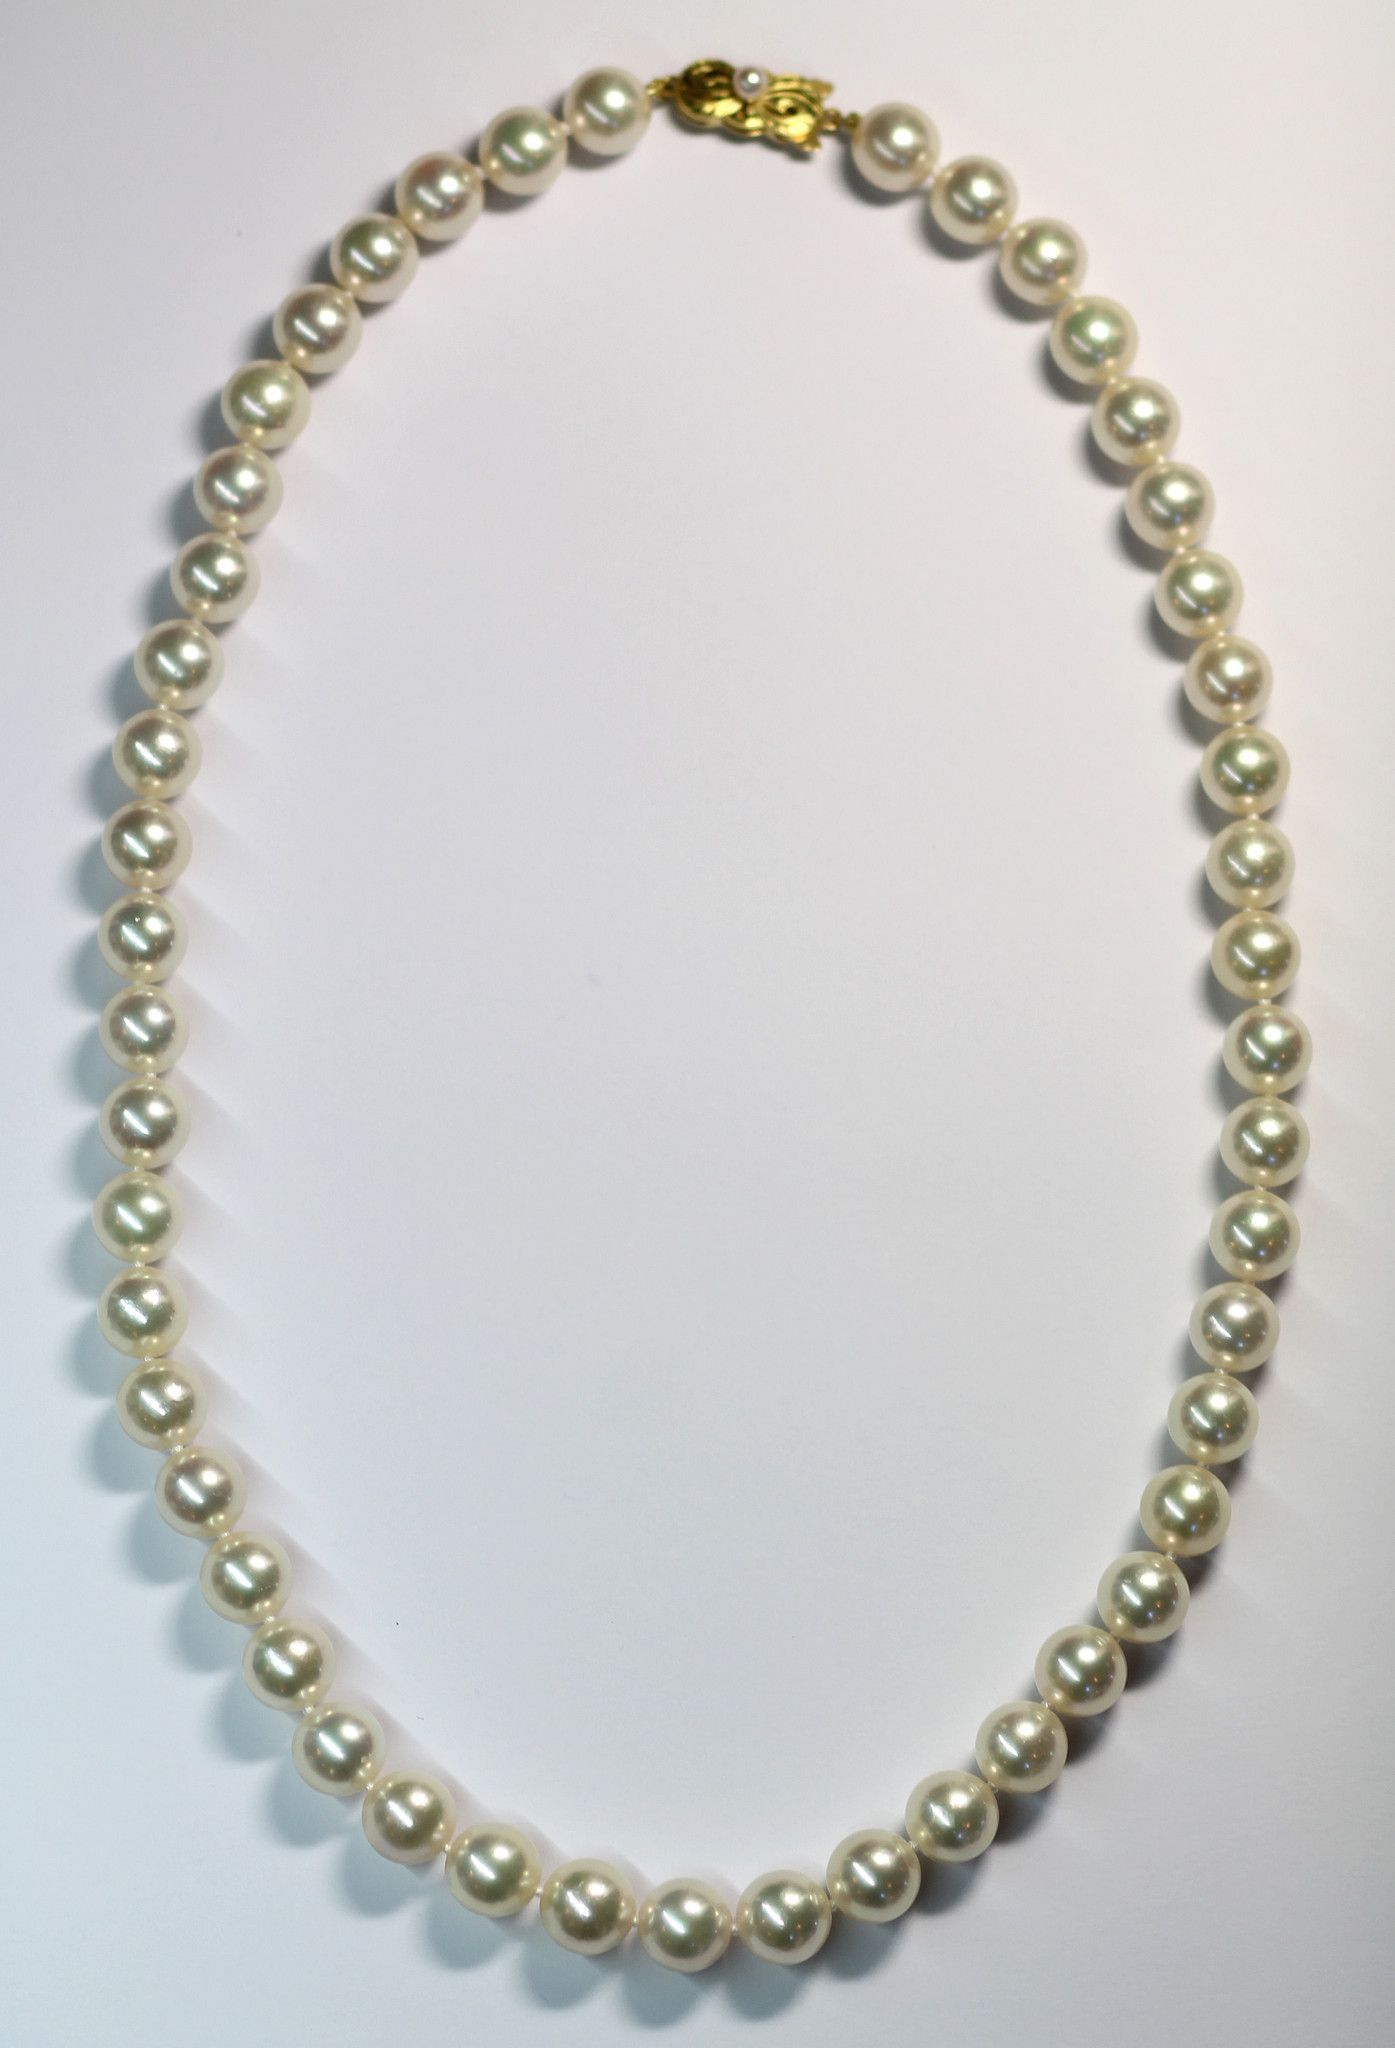 a full to item of and strand mikimoto cultured click classic pearls expand single beautiful